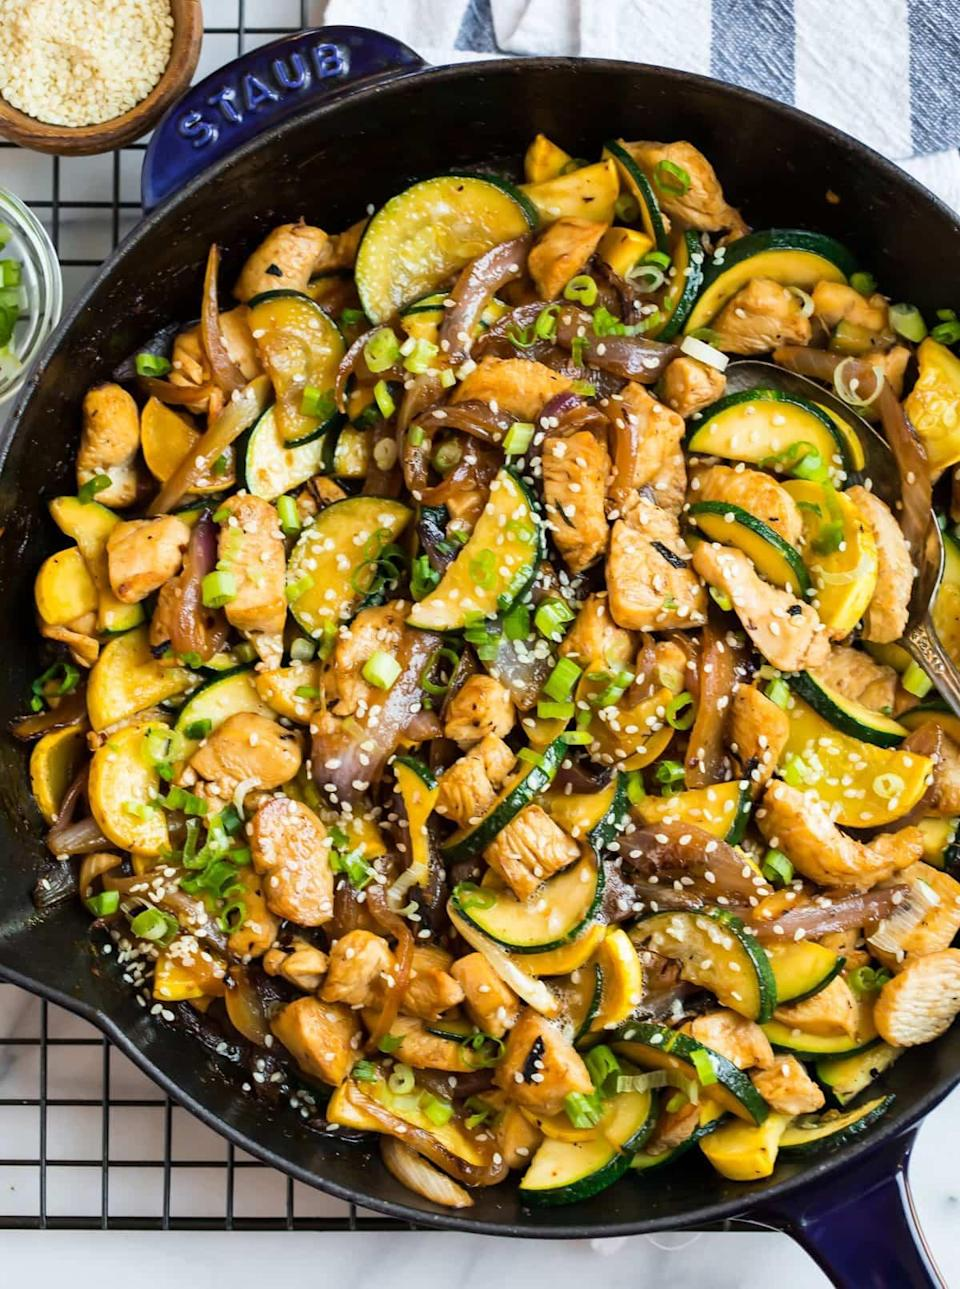 "<p>Shake up the usual stir-fry when you cook up this enticing meal. Made with chicken, zucchini, and onions, it's packed with flavor and topped with a gooey sauce that effortlessly ties all the flavors together.</p> <p><strong>Get the recipe</strong>: <a href=""https://www.wellplated.com/zucchini-stir-fry/"" class=""link rapid-noclick-resp"" rel=""nofollow noopener"" target=""_blank"" data-ylk=""slk:zucchini stir-fry"">zucchini stir-fry</a></p>"